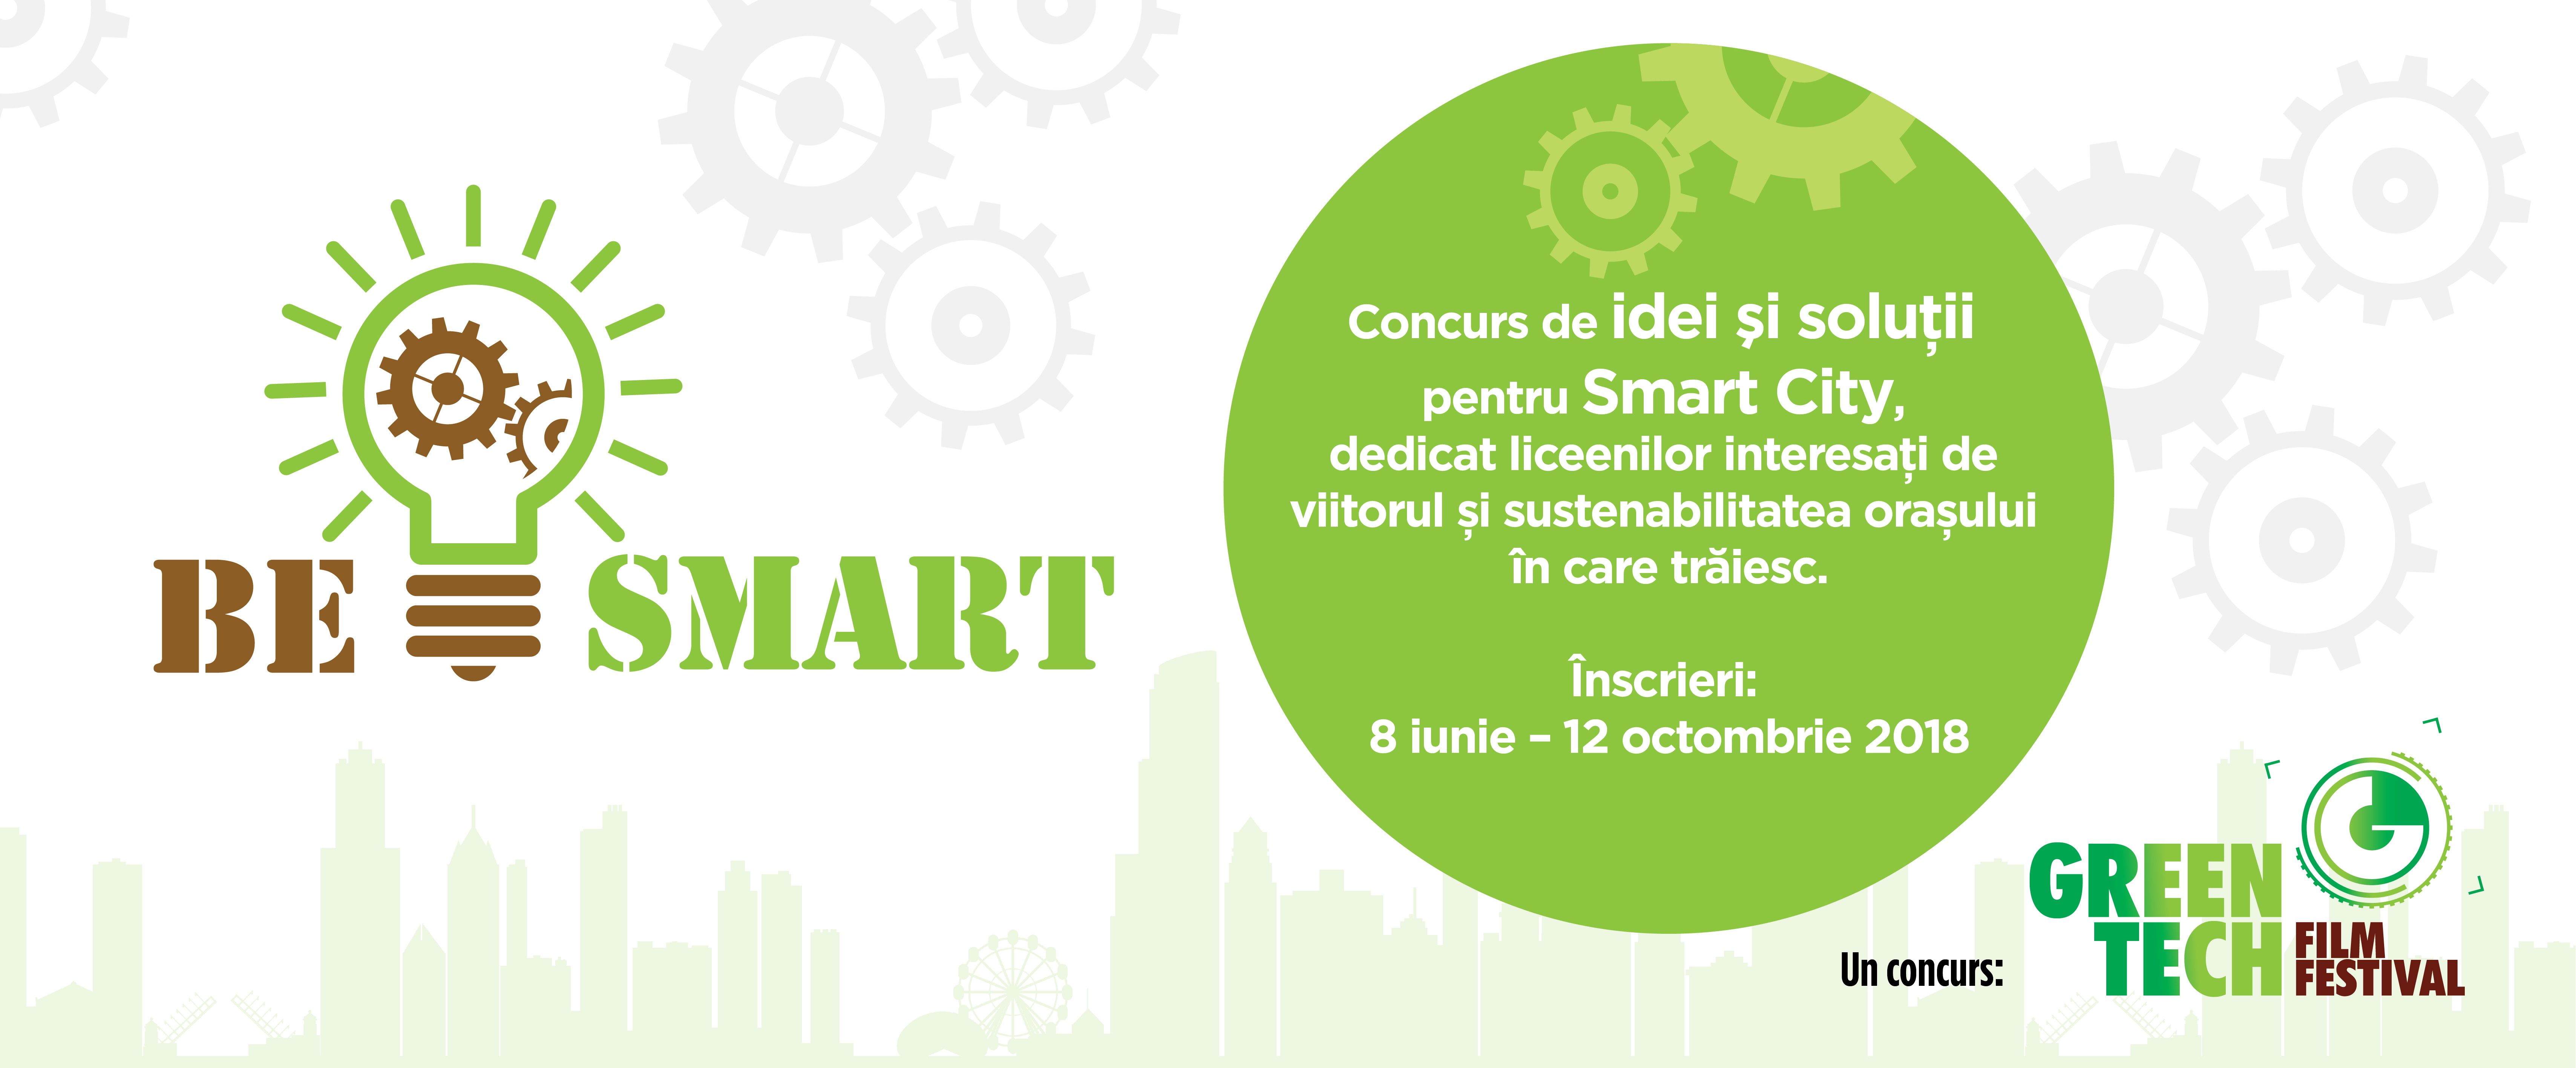 cover FB BeSMART 06 2018 01